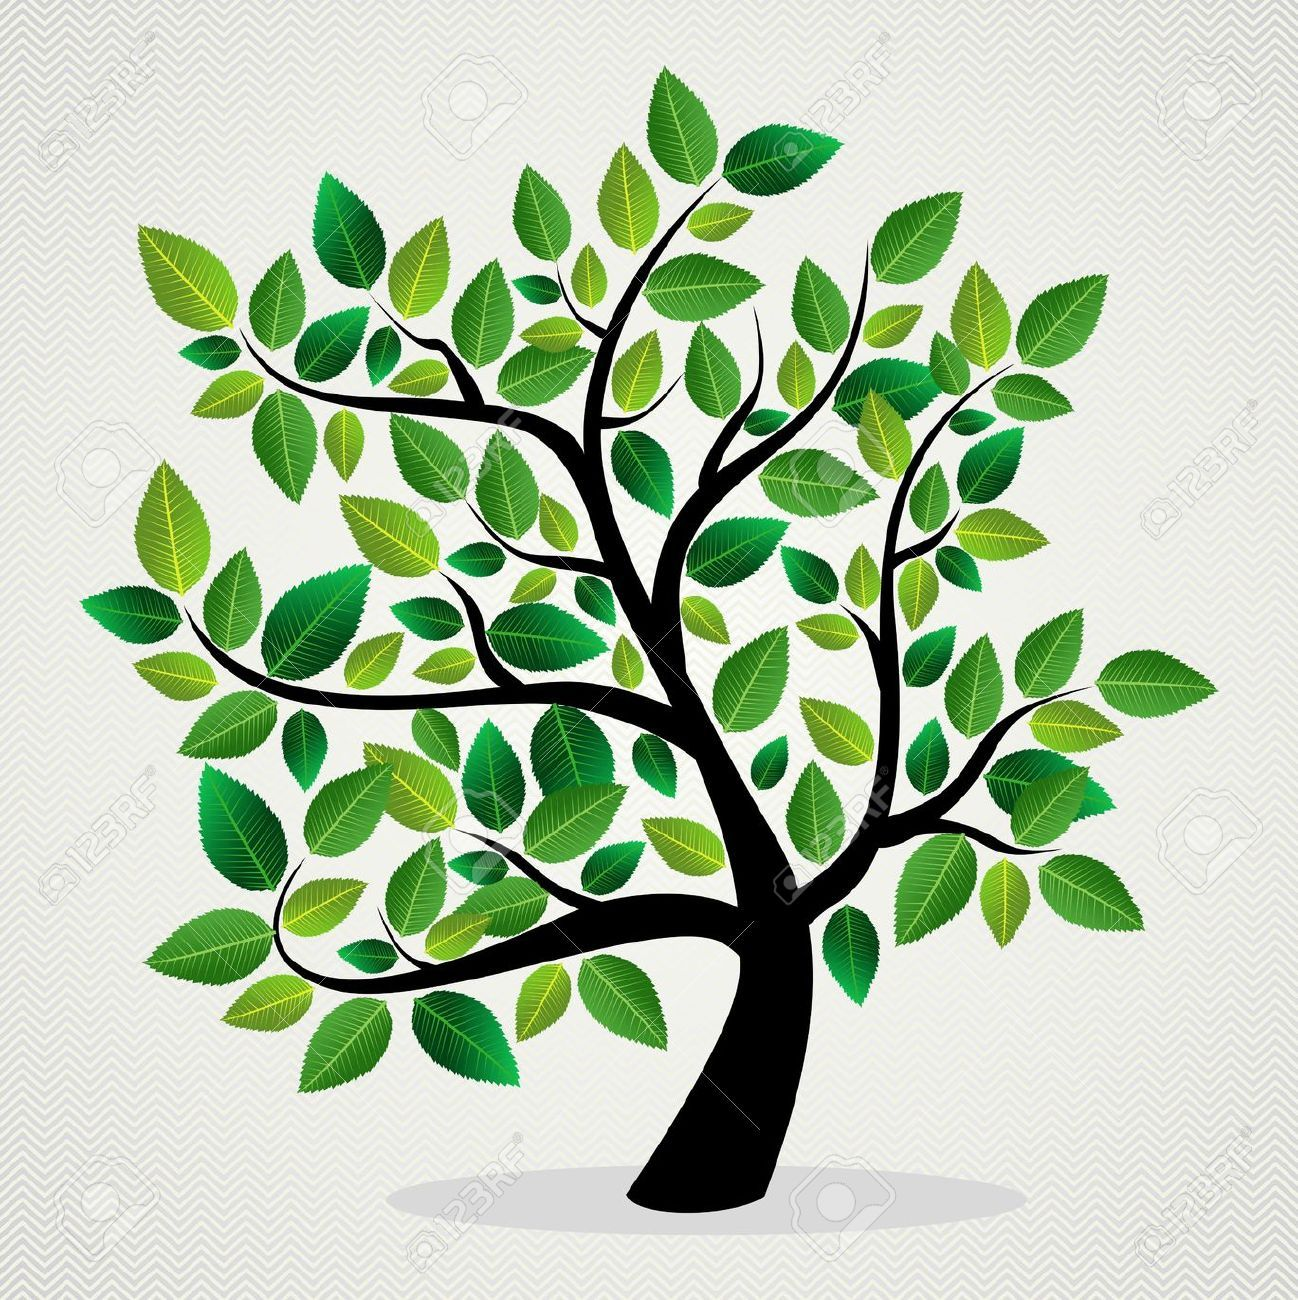 Leaning Brown Family Tree | DFR Ideas | Pinterest | Family trees